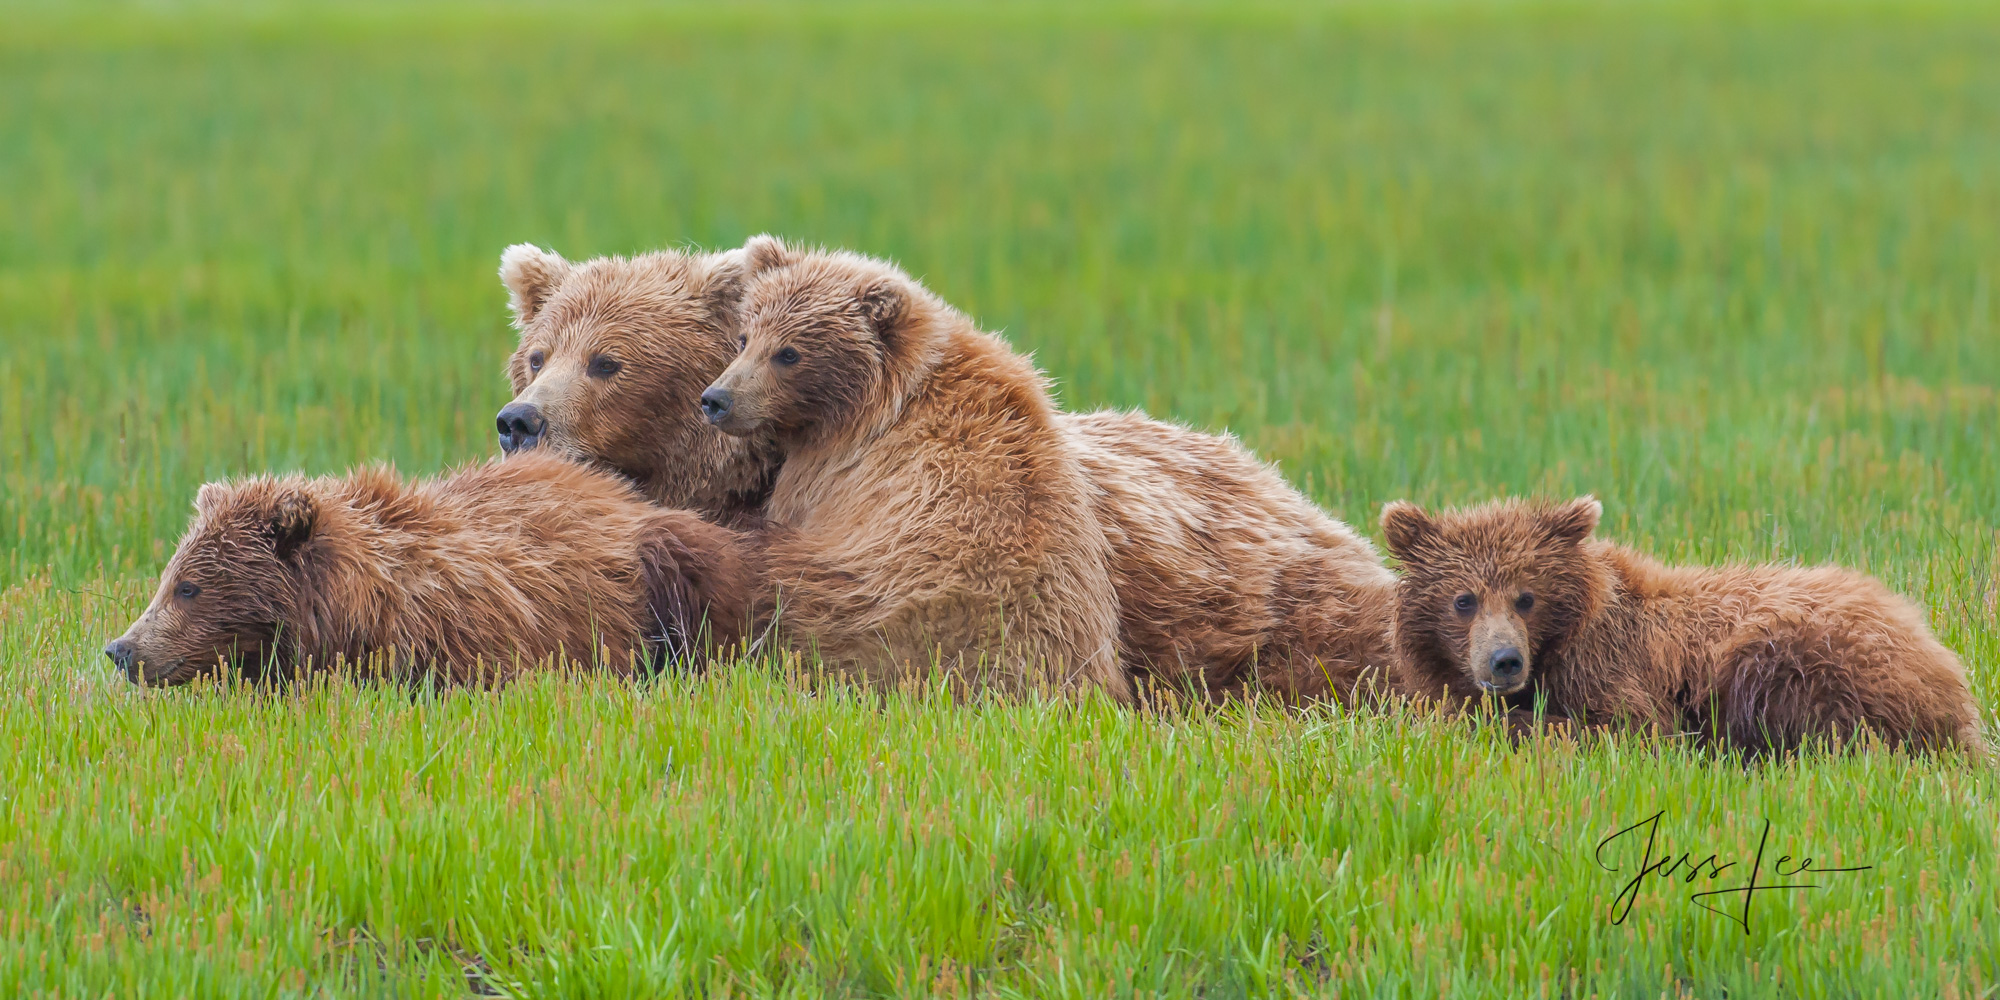 Mother and cubs alert but safe and secure. Limited edition of 800 prints. These Grizzly bear fine art wildlife photographs are...